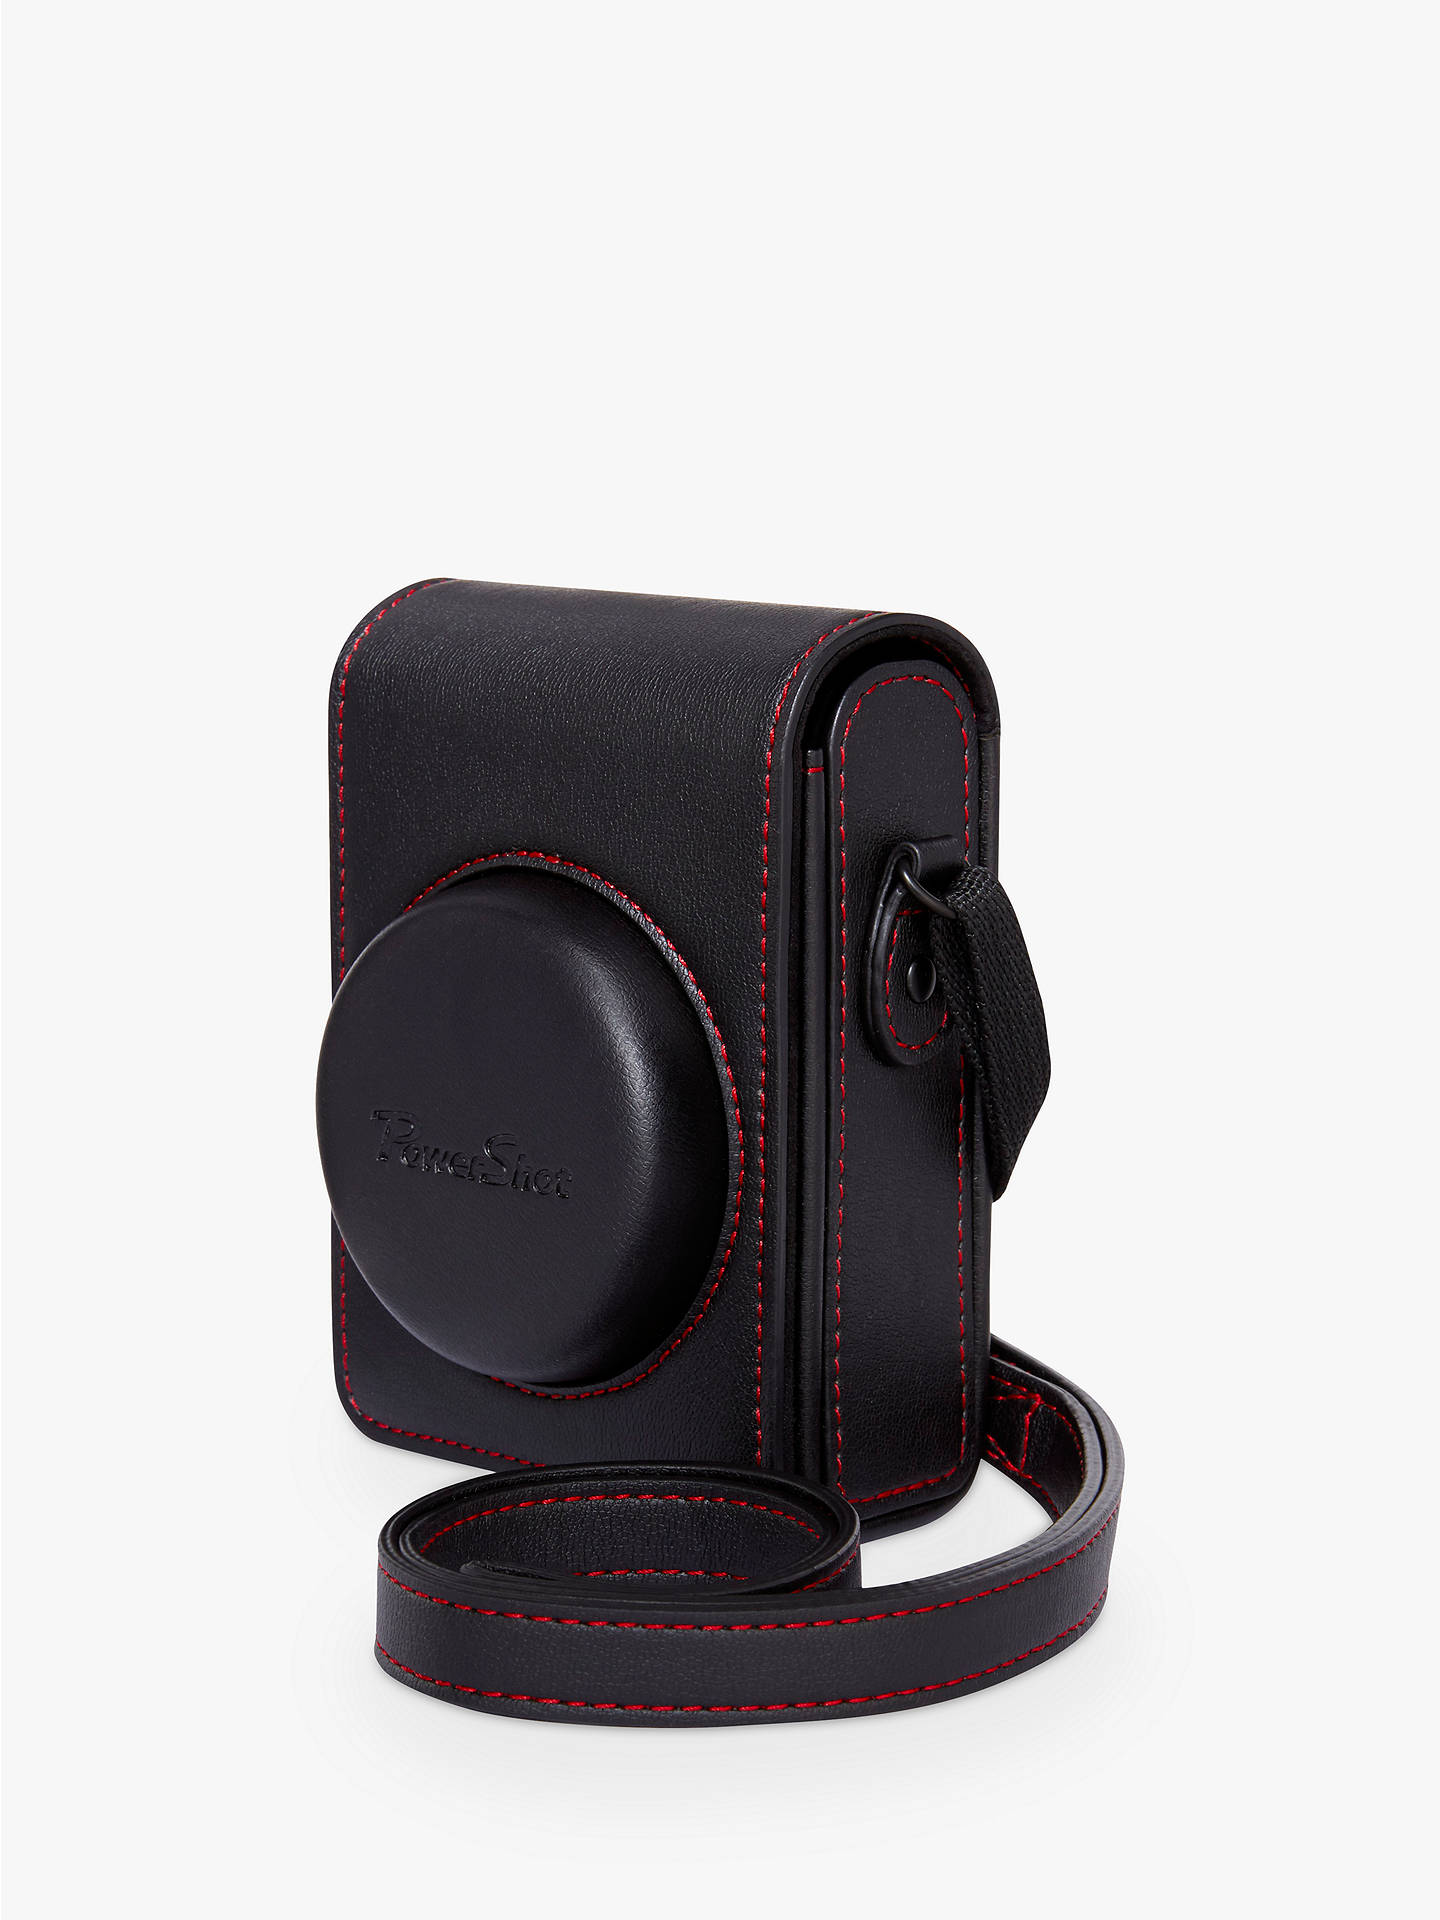 BuyCanon DCC-1880 Soft Leather Camera Case for PowerShot G7X II, Black Online at johnlewis.com